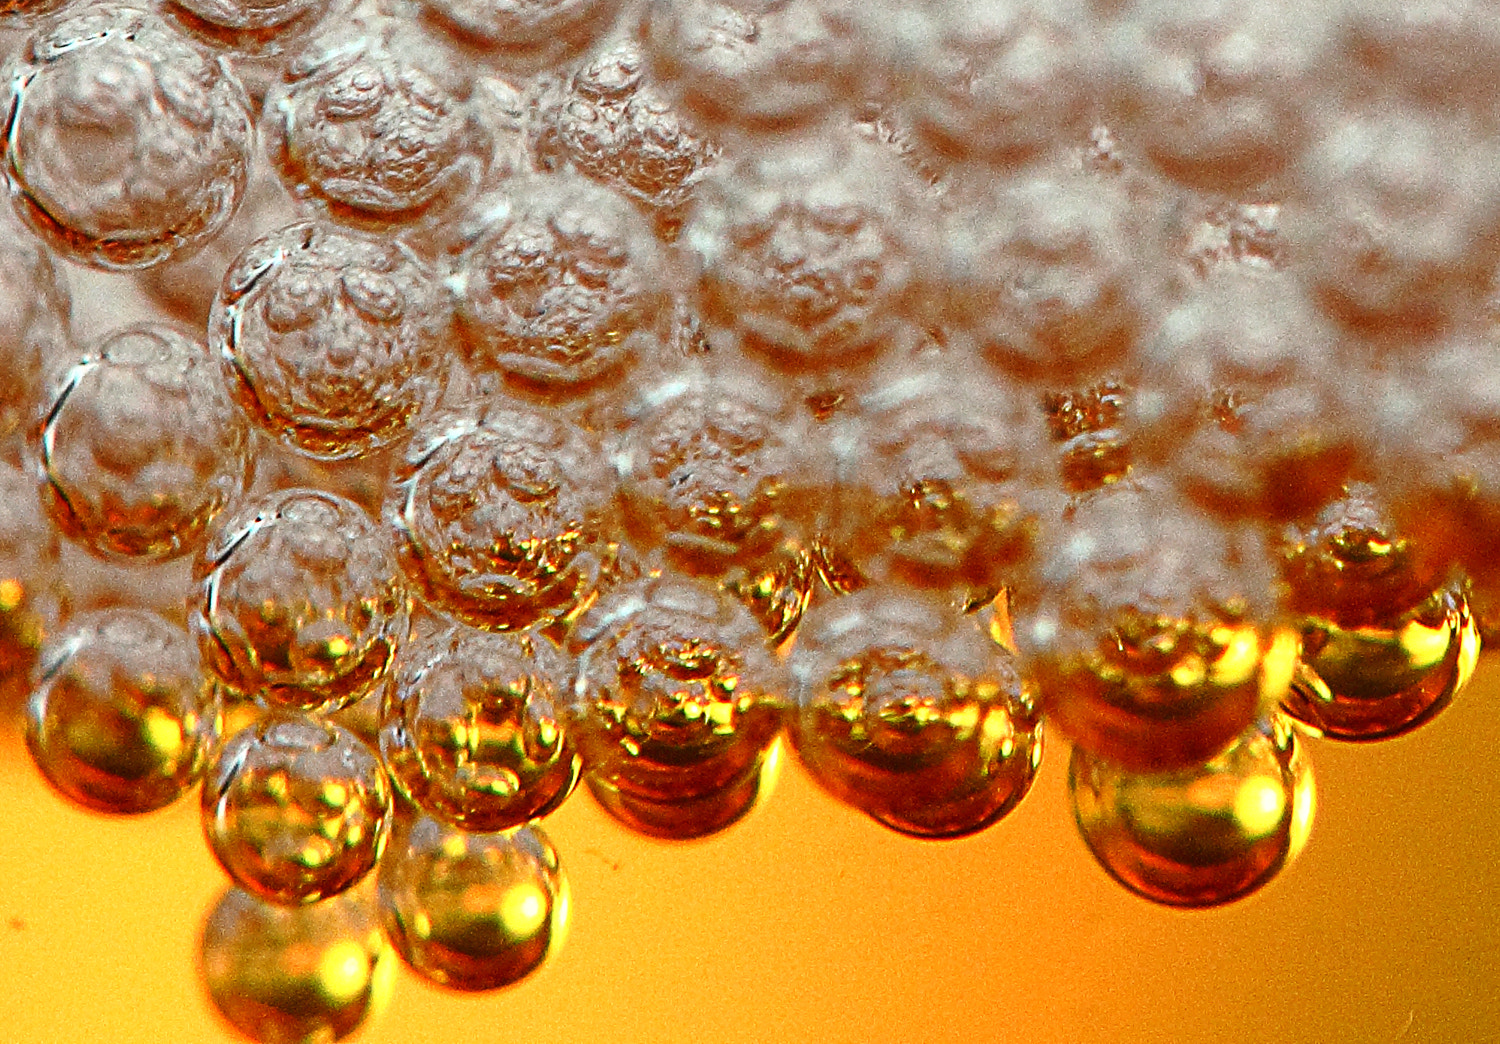 Photograph Beer bubbles by Pavel Koshkin on 500px